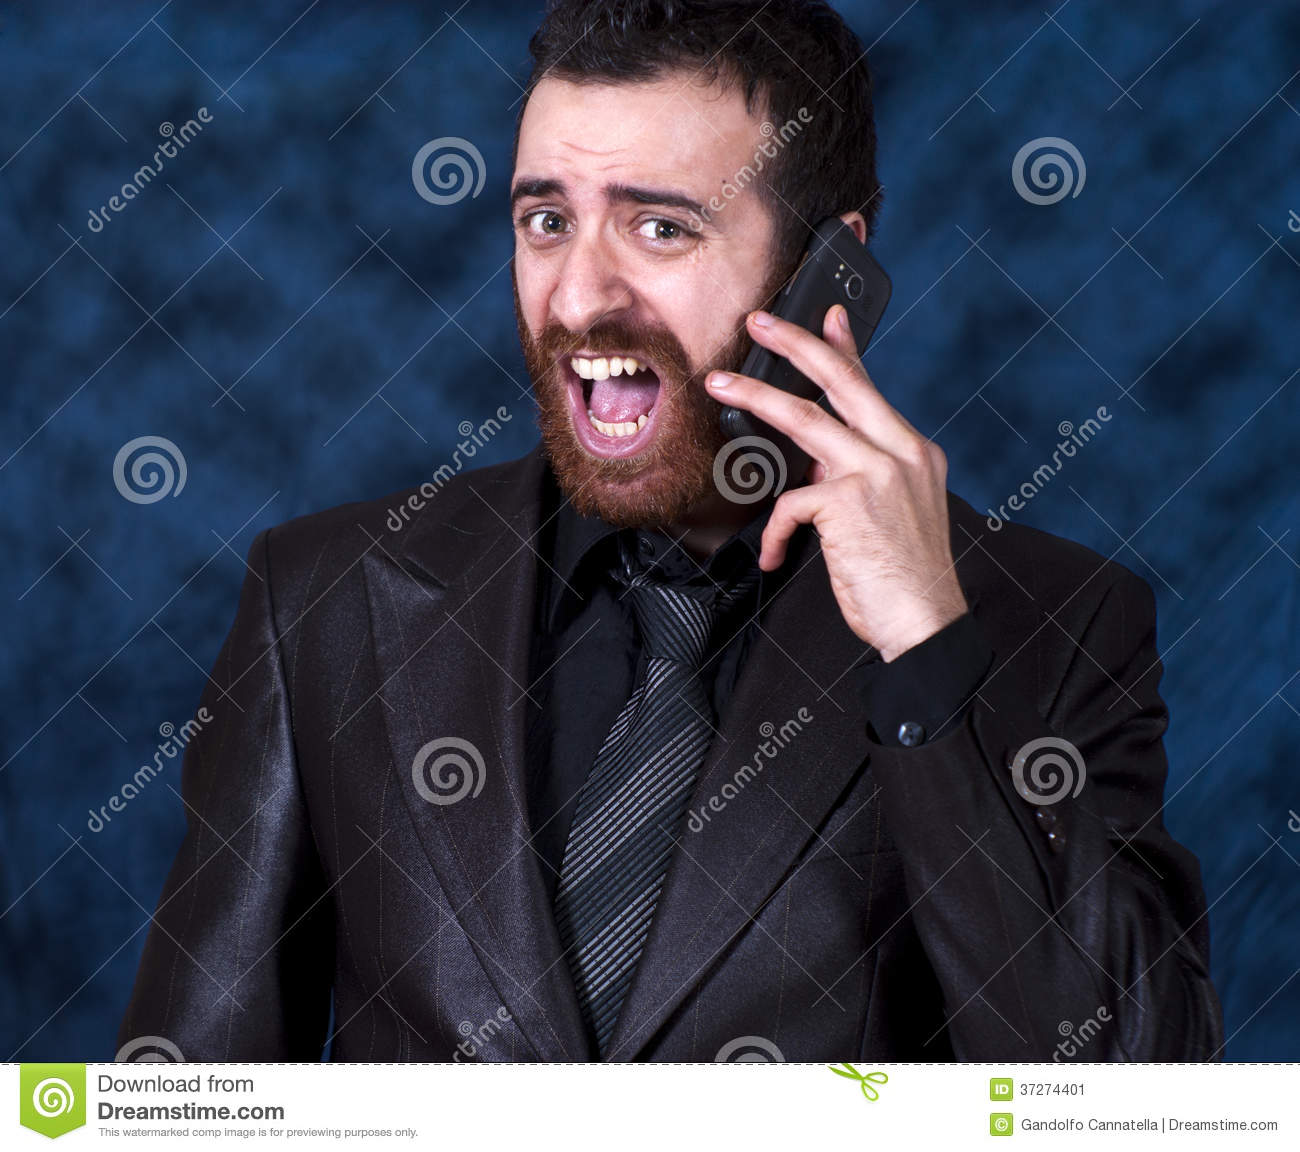 Man in business suit shouting into his mobile phone